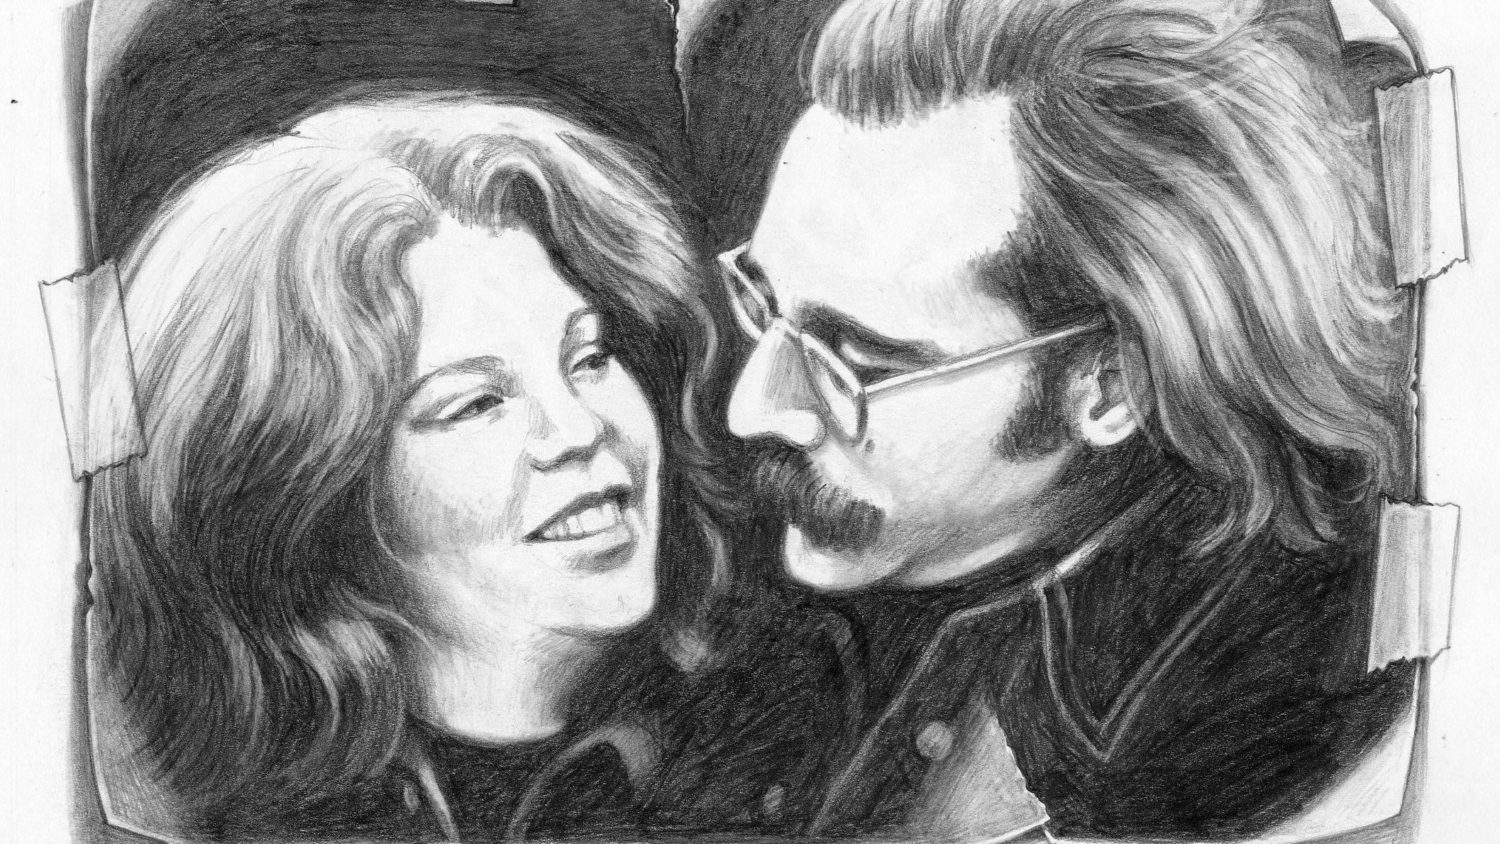 Drawing has made it possible for me to stay close to joy when she is no longer here jonathan santlofer writes in his memoir the widowers notebook